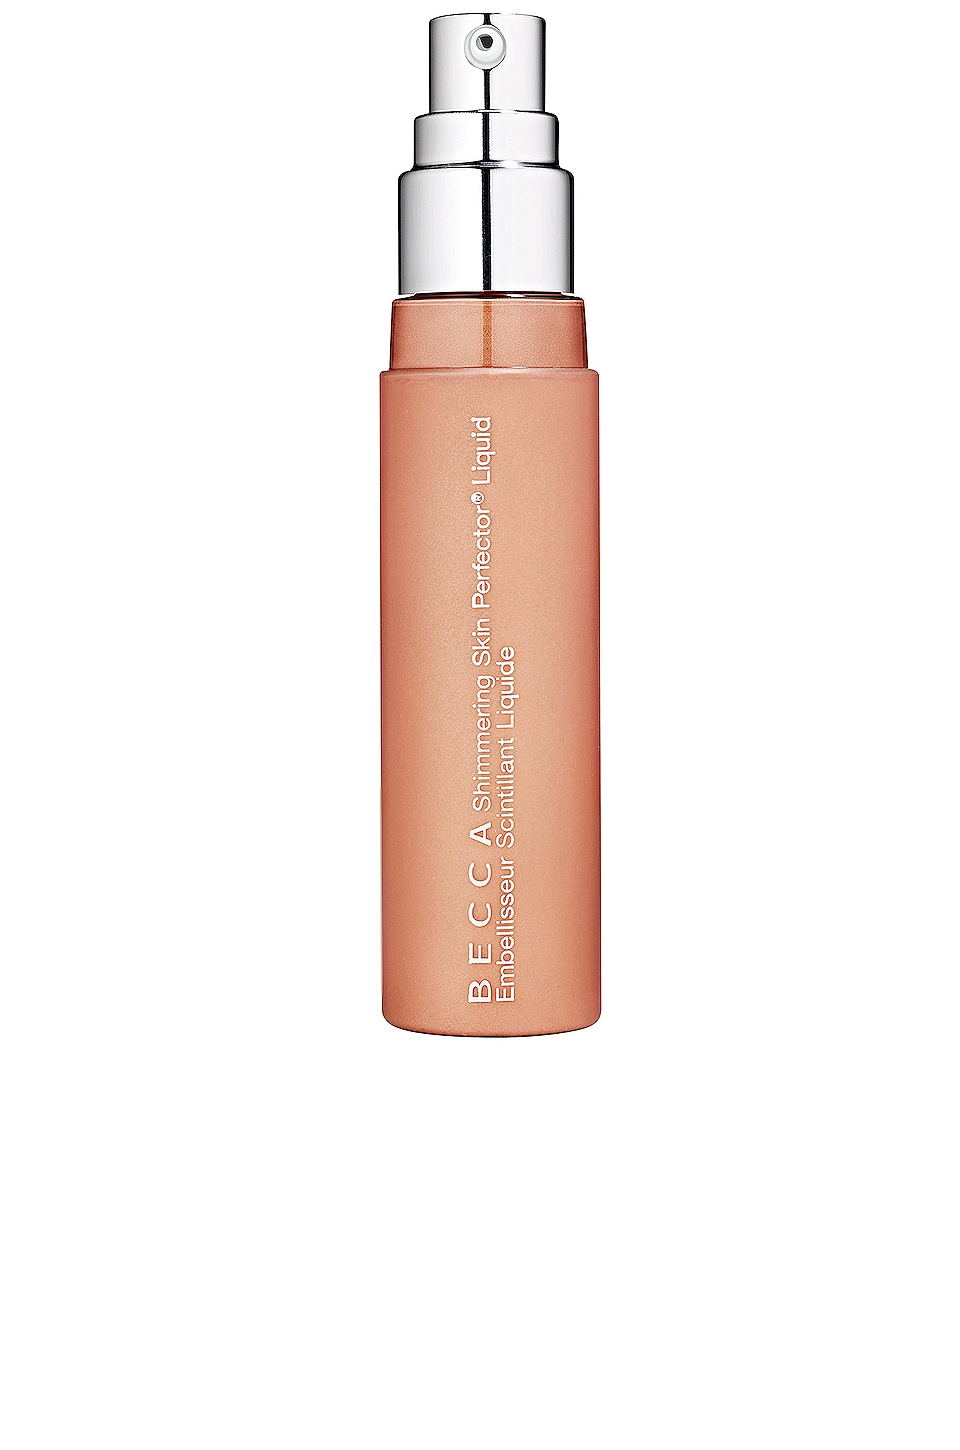 BECCA Shimmering Skin Perfector Liquid in Rose Gold